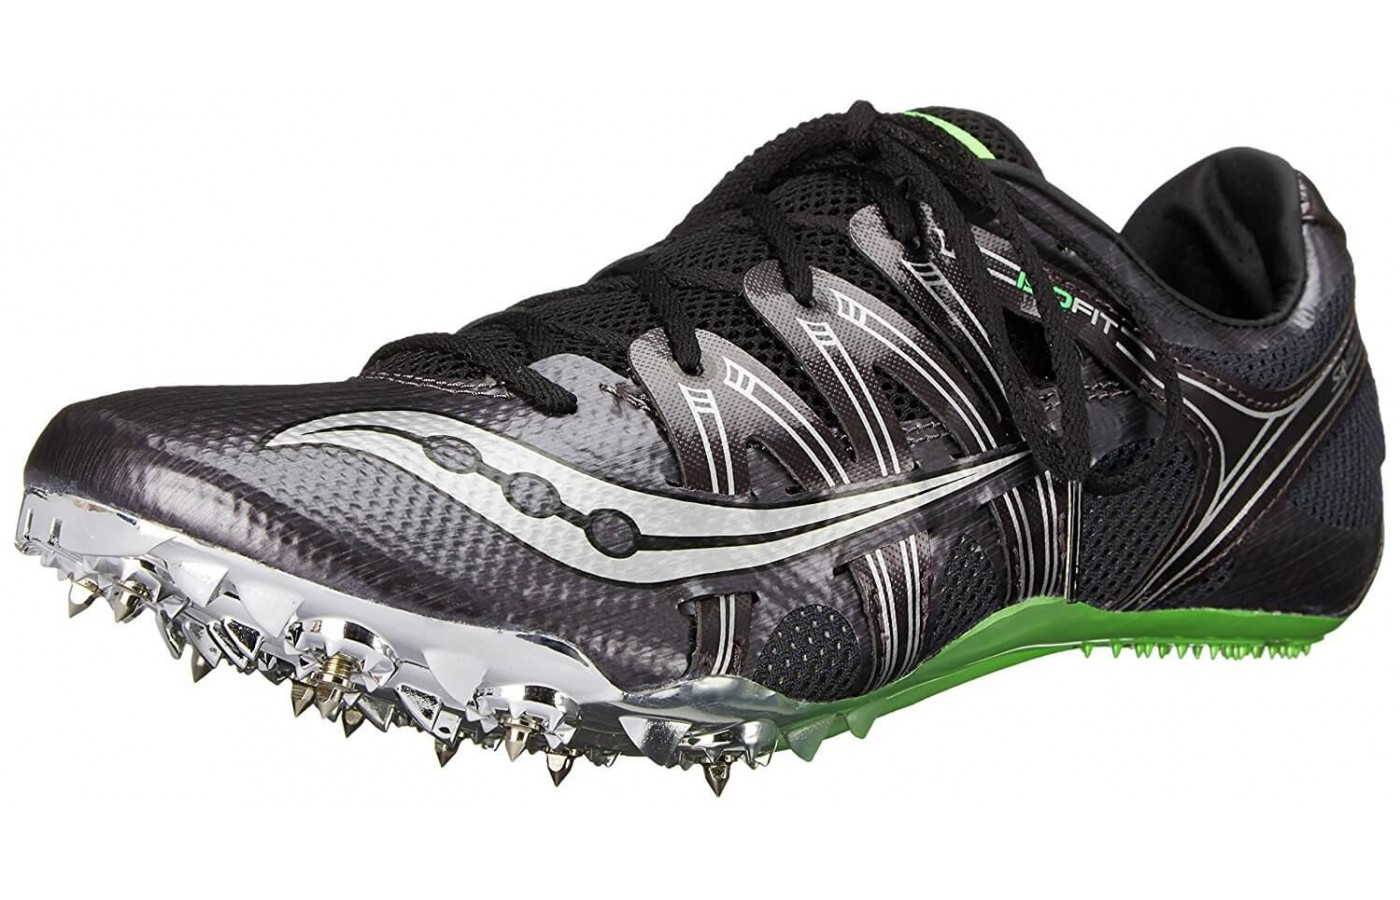 Saucony Showdown is a track shoe